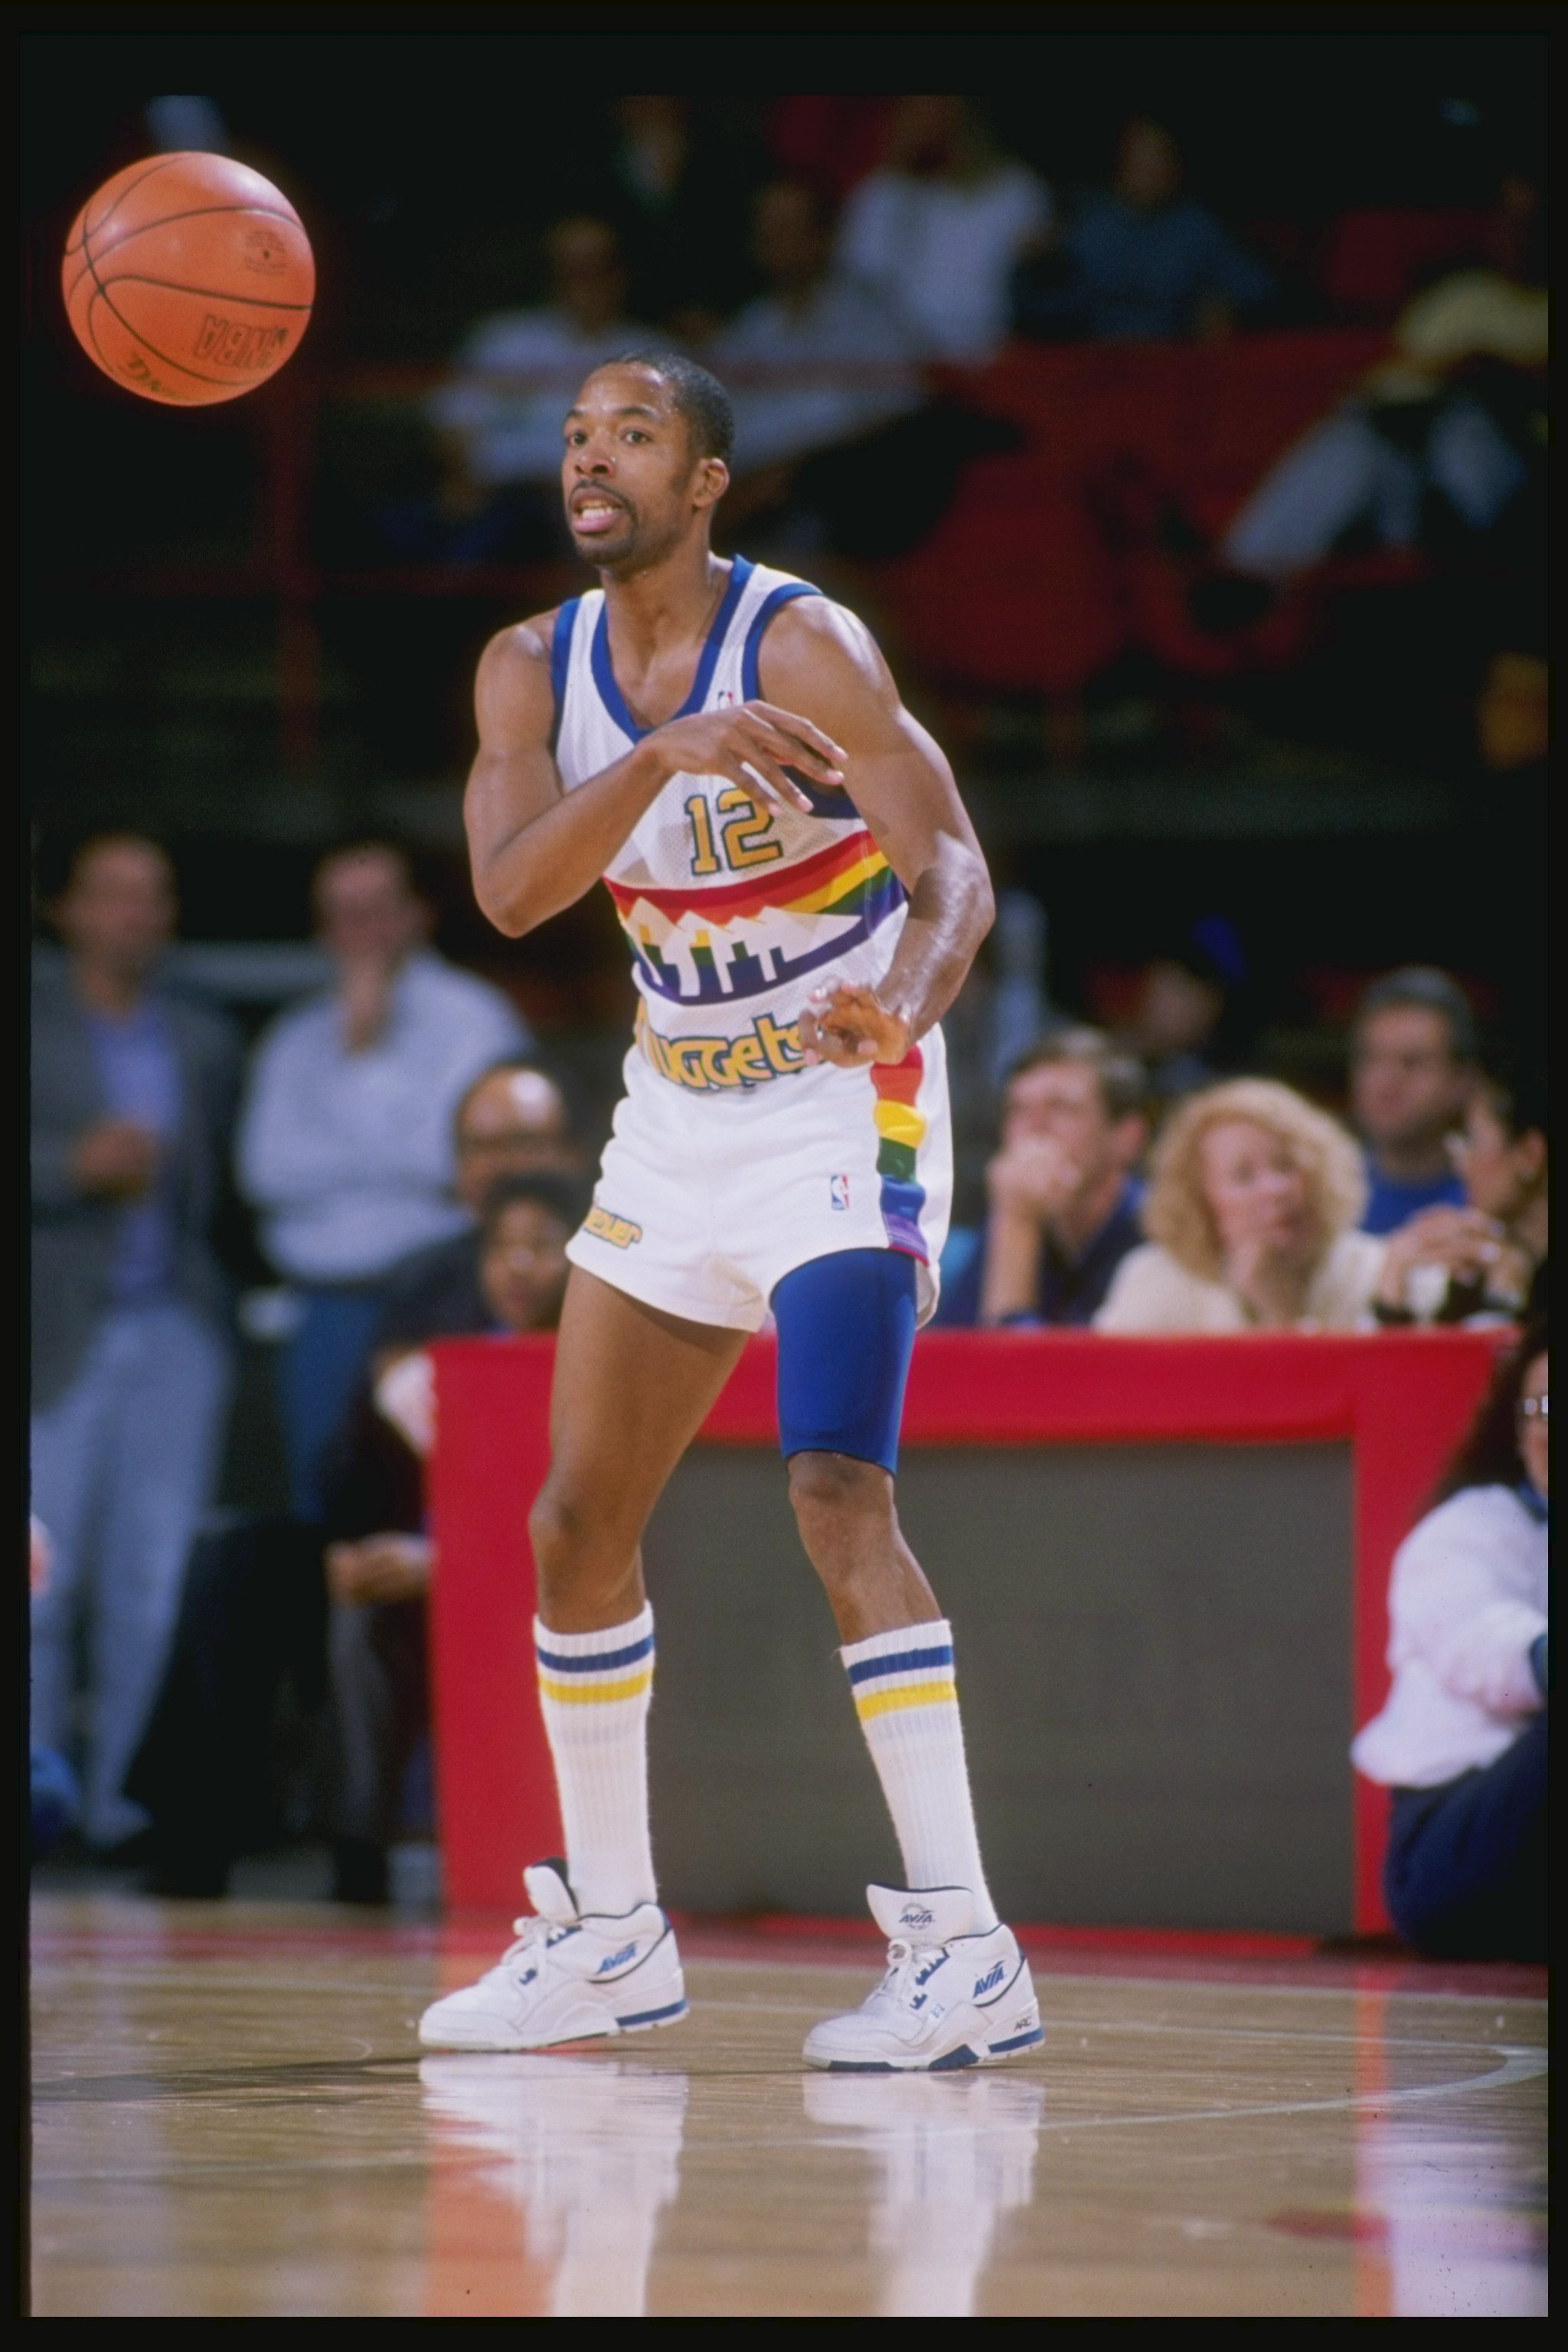 1989:  Fat Lever of the Denver Nuggets passes the ball during a game at the McNichols Sports Arena in Denver, Colorado. Mandatory Credit: Tim de Frisco  /Allsport